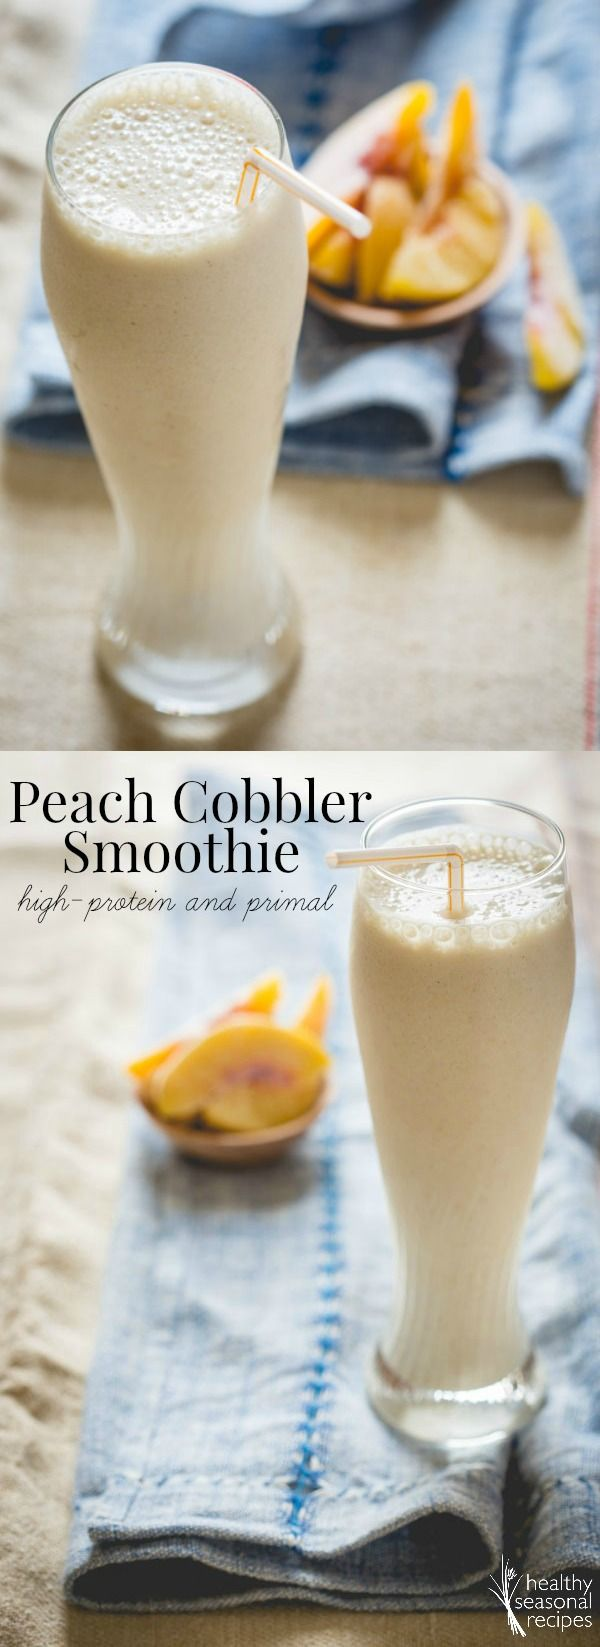 Blog post at Healthy Seasonal Recipes : Here is a twist on Peach Cobbler in the form of a protein packed peach smoothie, with sugar-free protein powder, oats and cinnamon. Only 185[..]